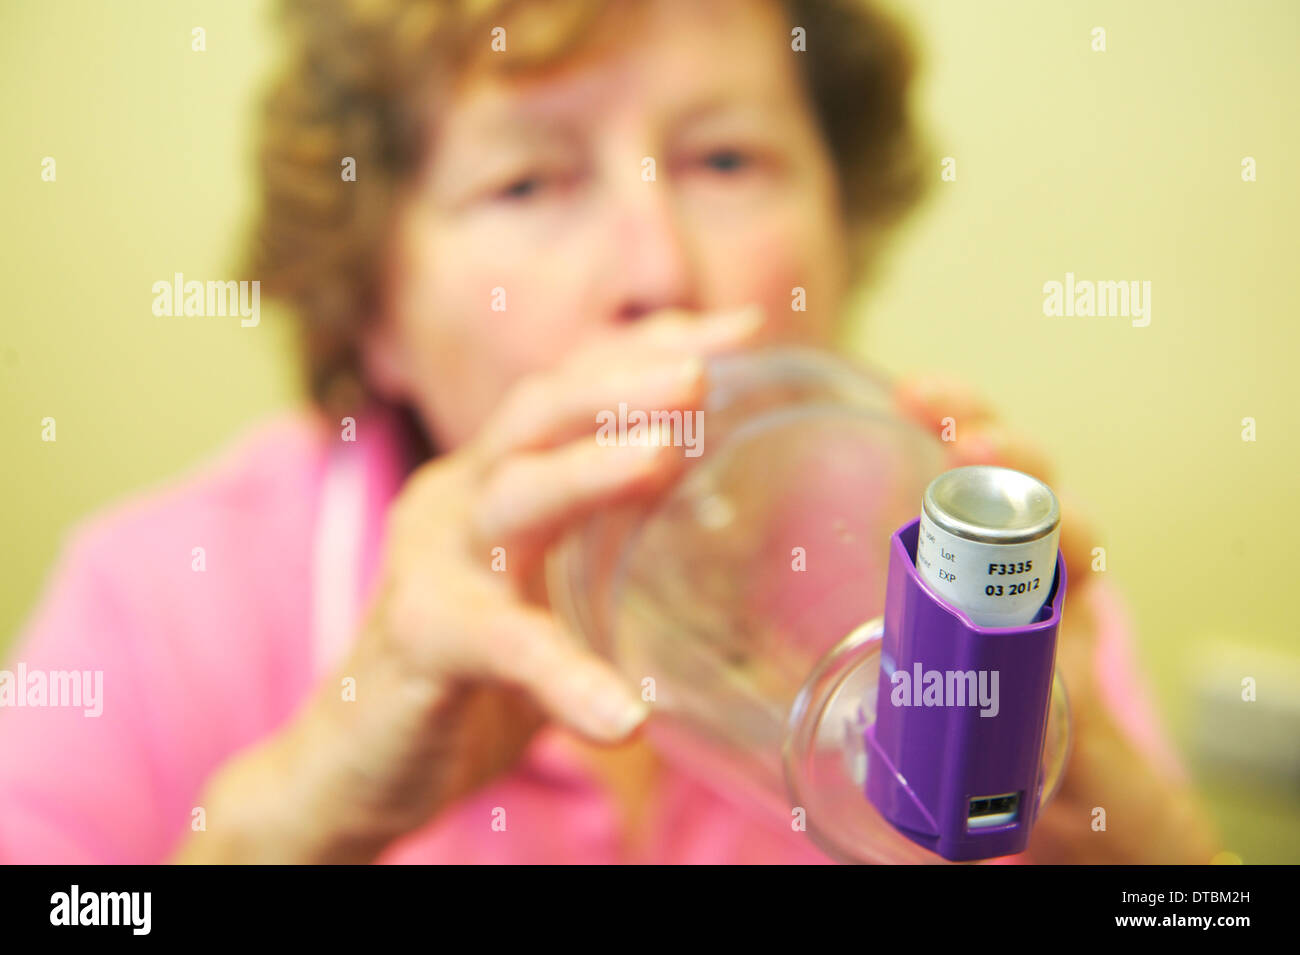 Patient using an inhaler and spacer during COPD clinic. Close up view, with patient looking at camera - Stock Image